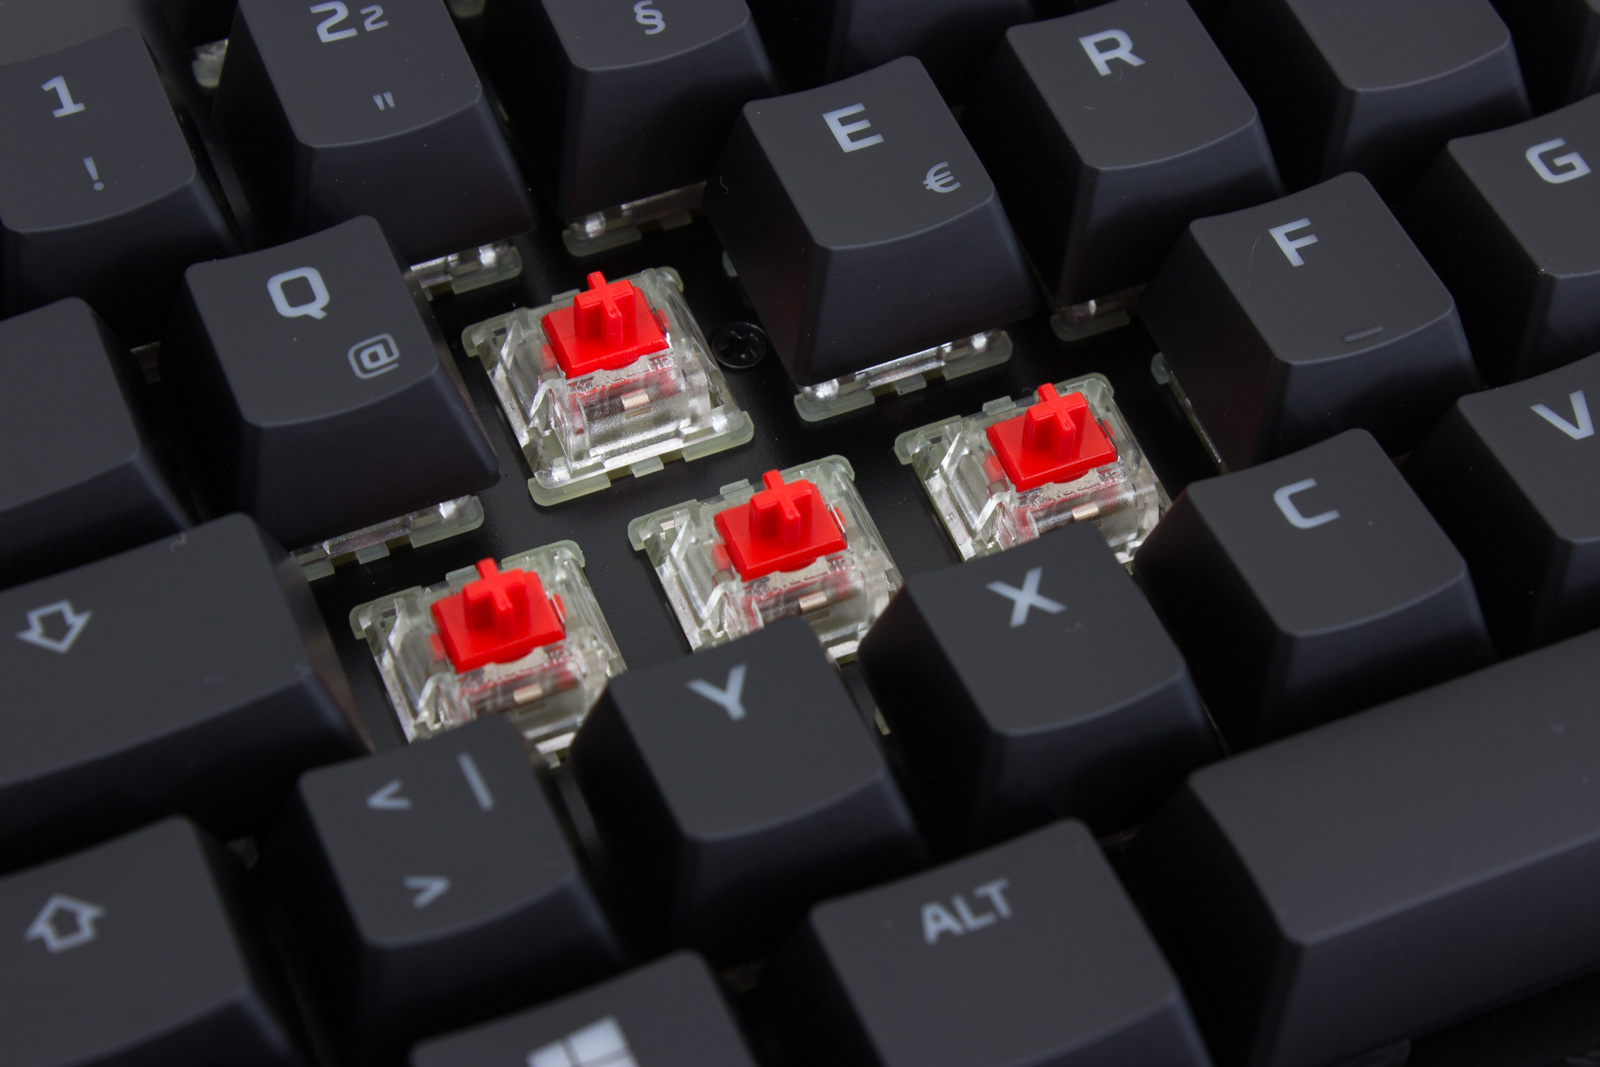 HyperX-Alloy-Elite Cherry MX